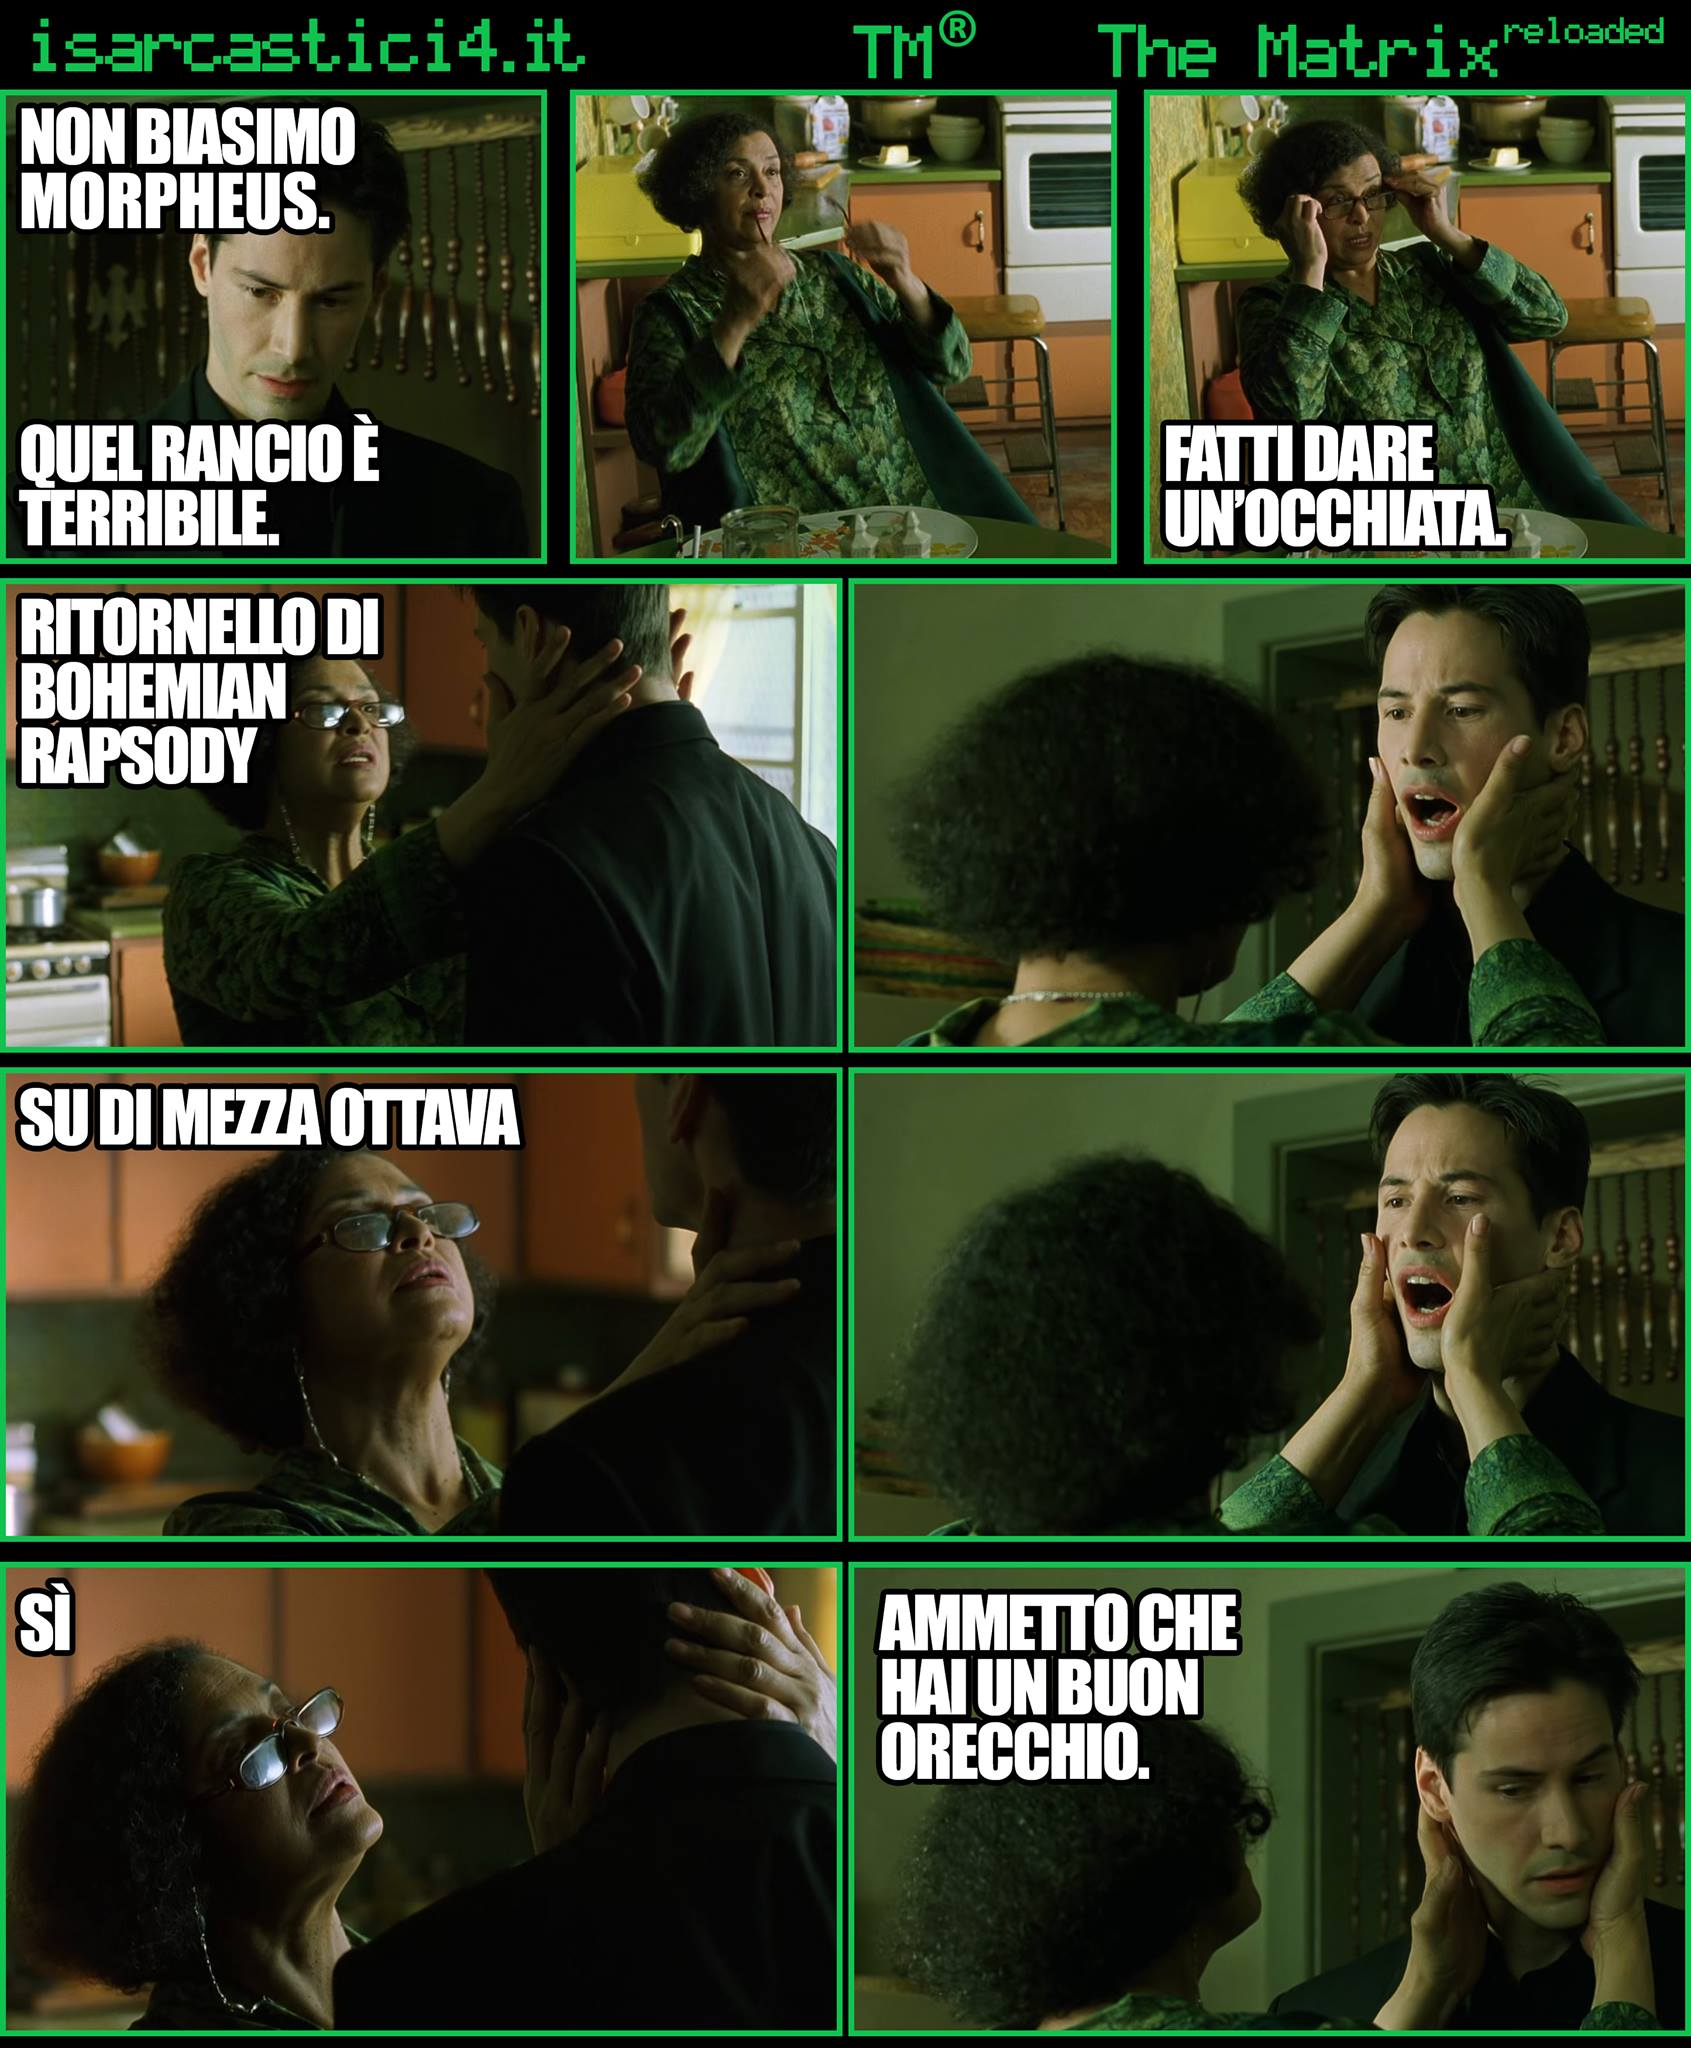 TMR - The Matrix Reloaded - La parodia a fumetti di Matrix